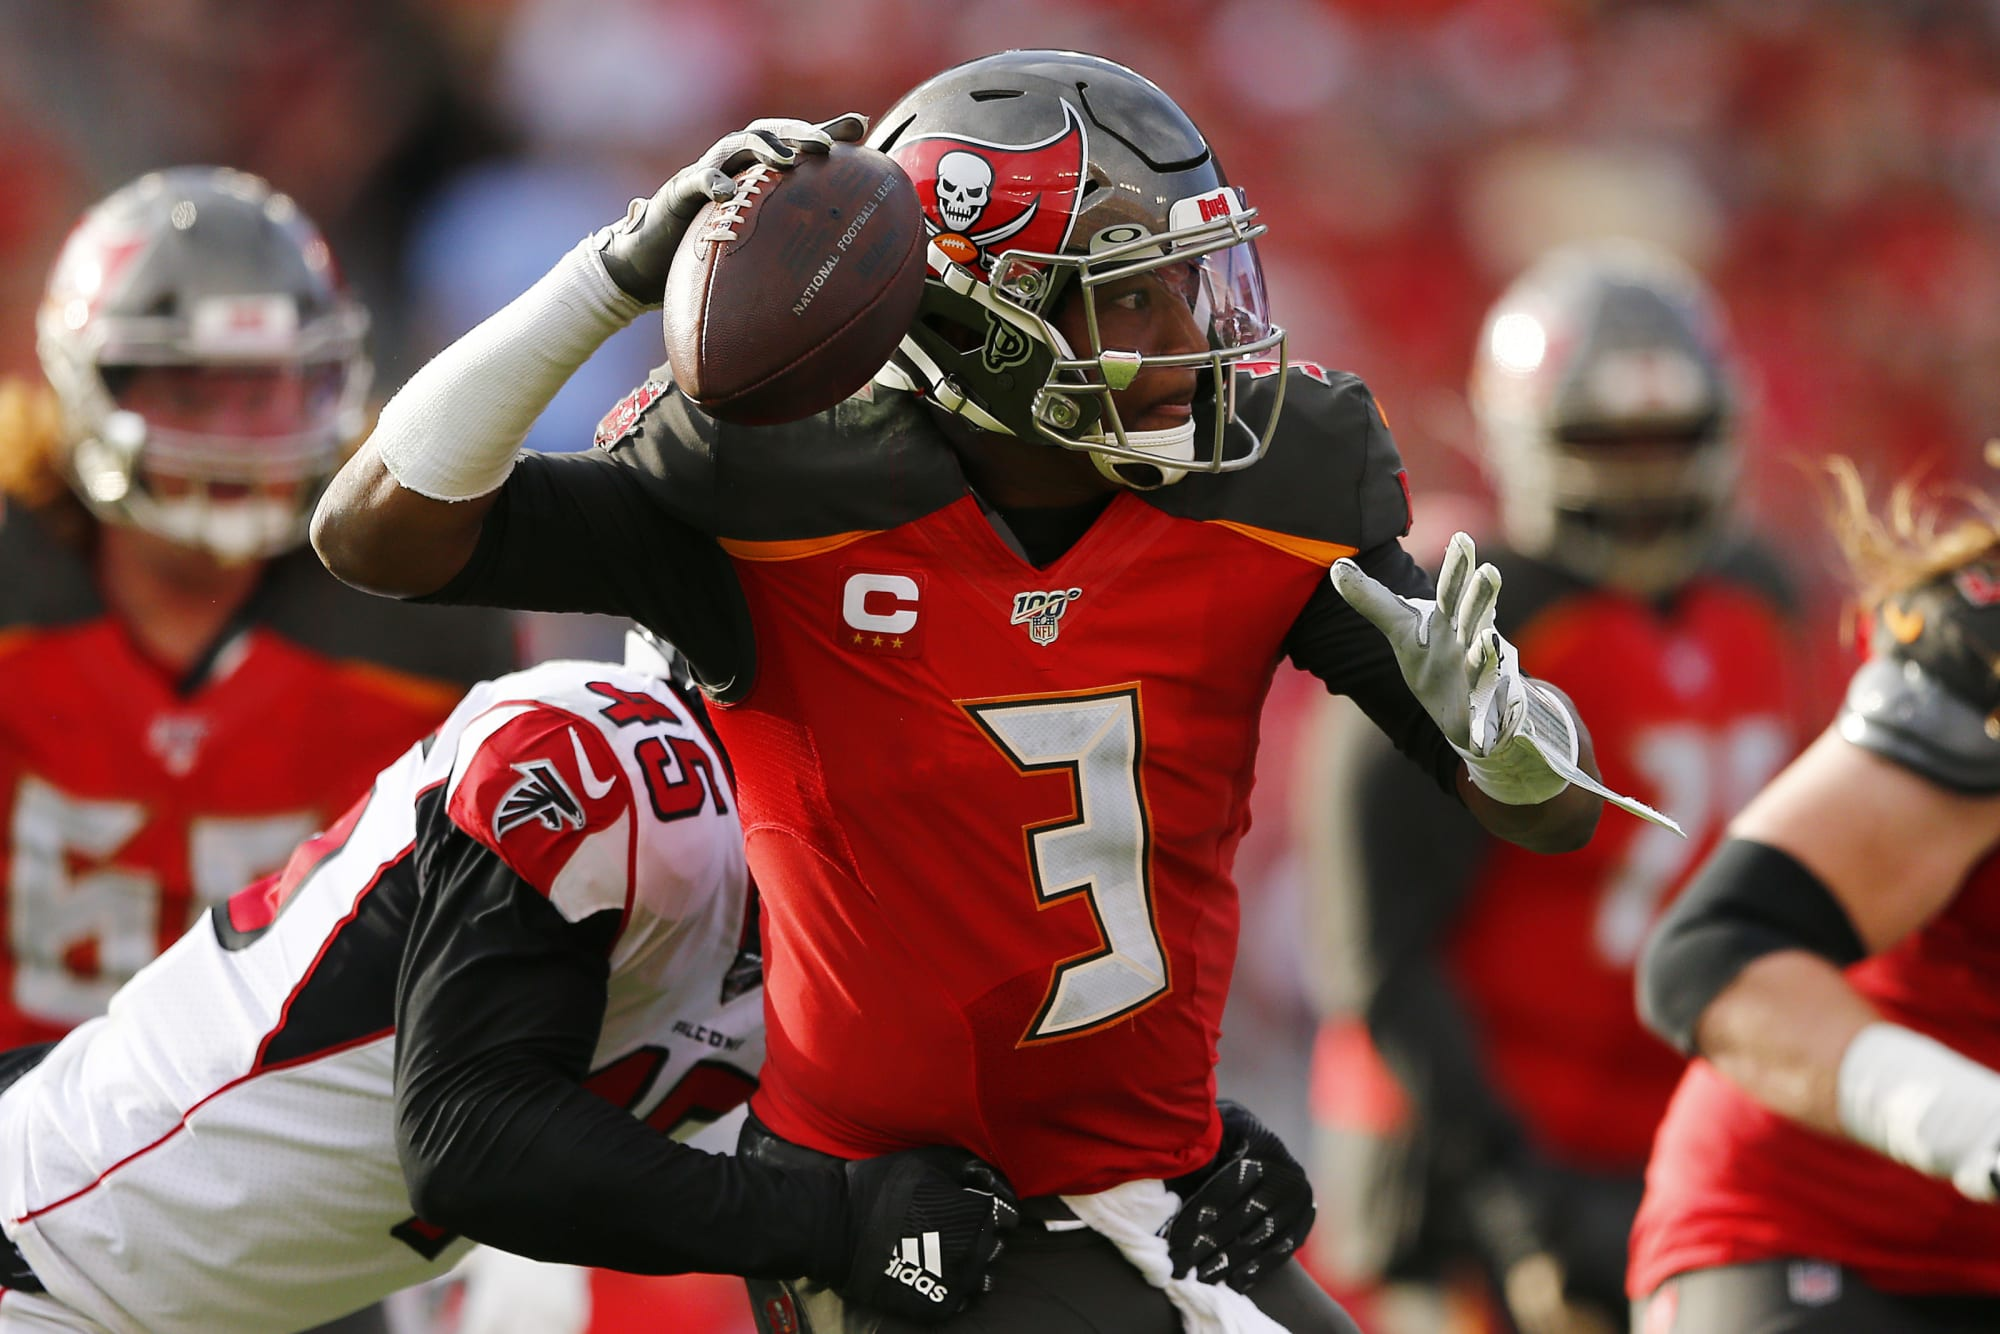 New Tampa Bay Buccaneers uniforms: Reaction and photos